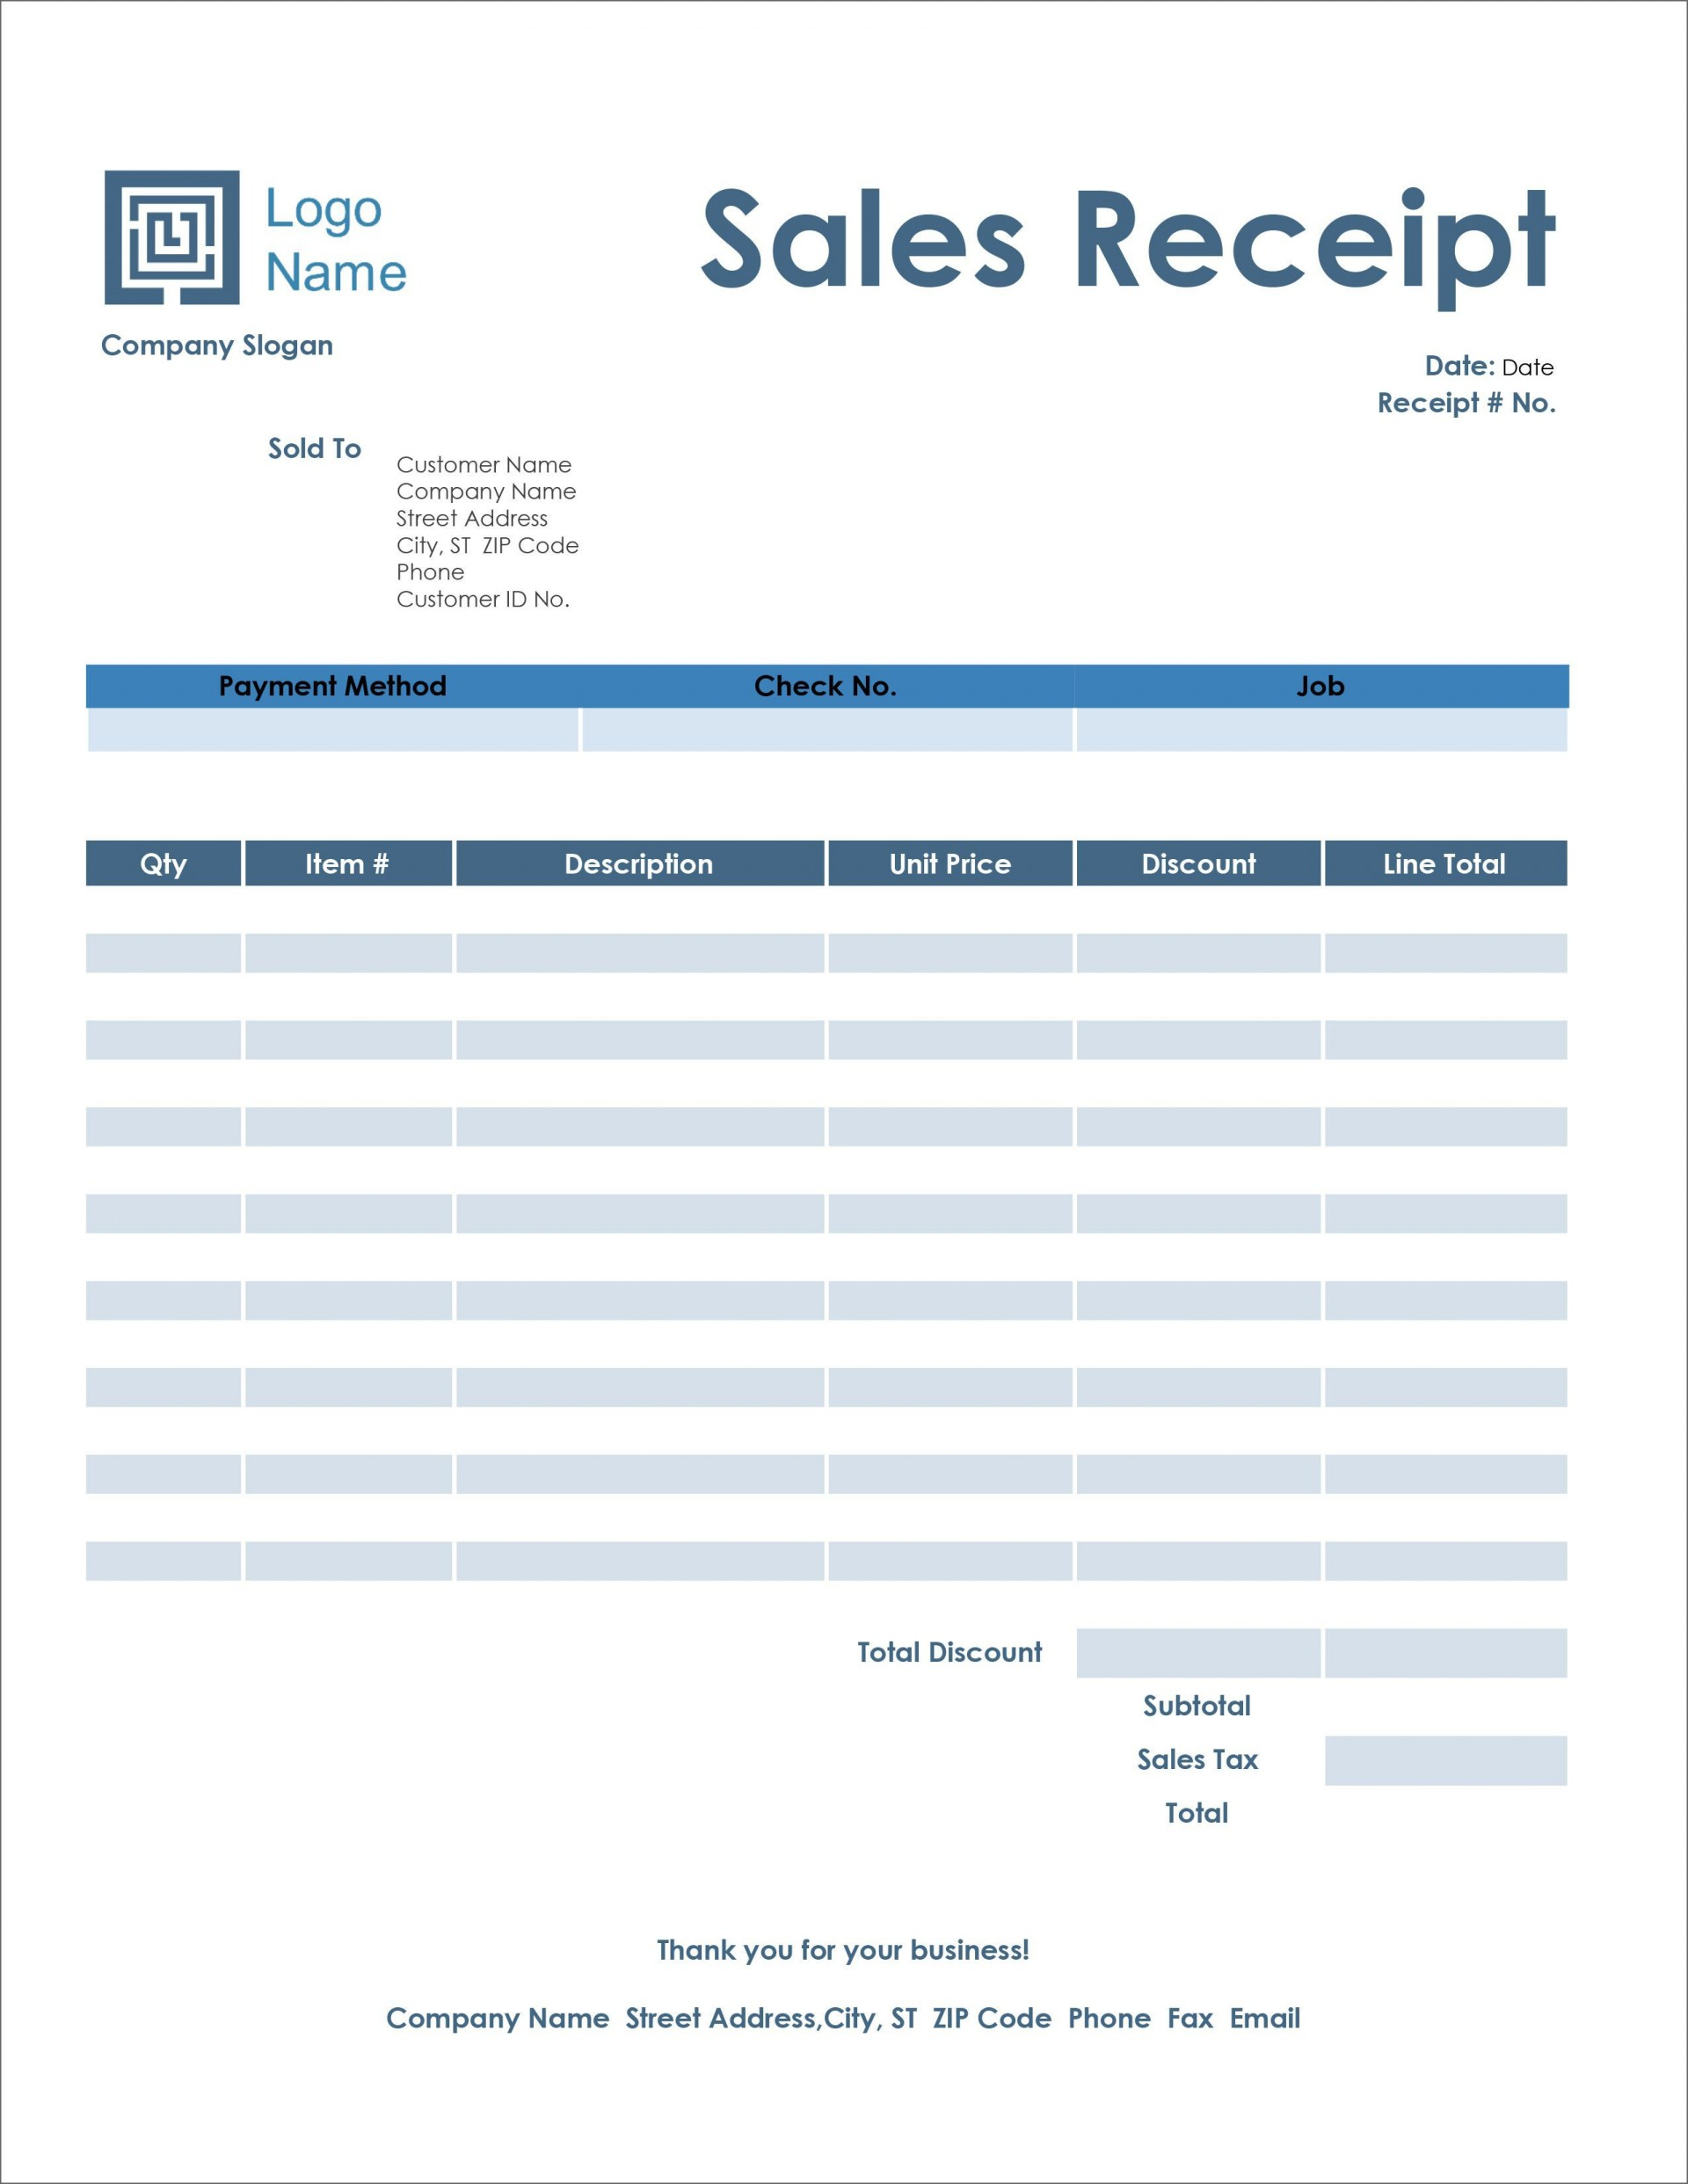 004 Unusual Rent Receipt Template Docx High Definition  Format India Word Document Download Doc1920